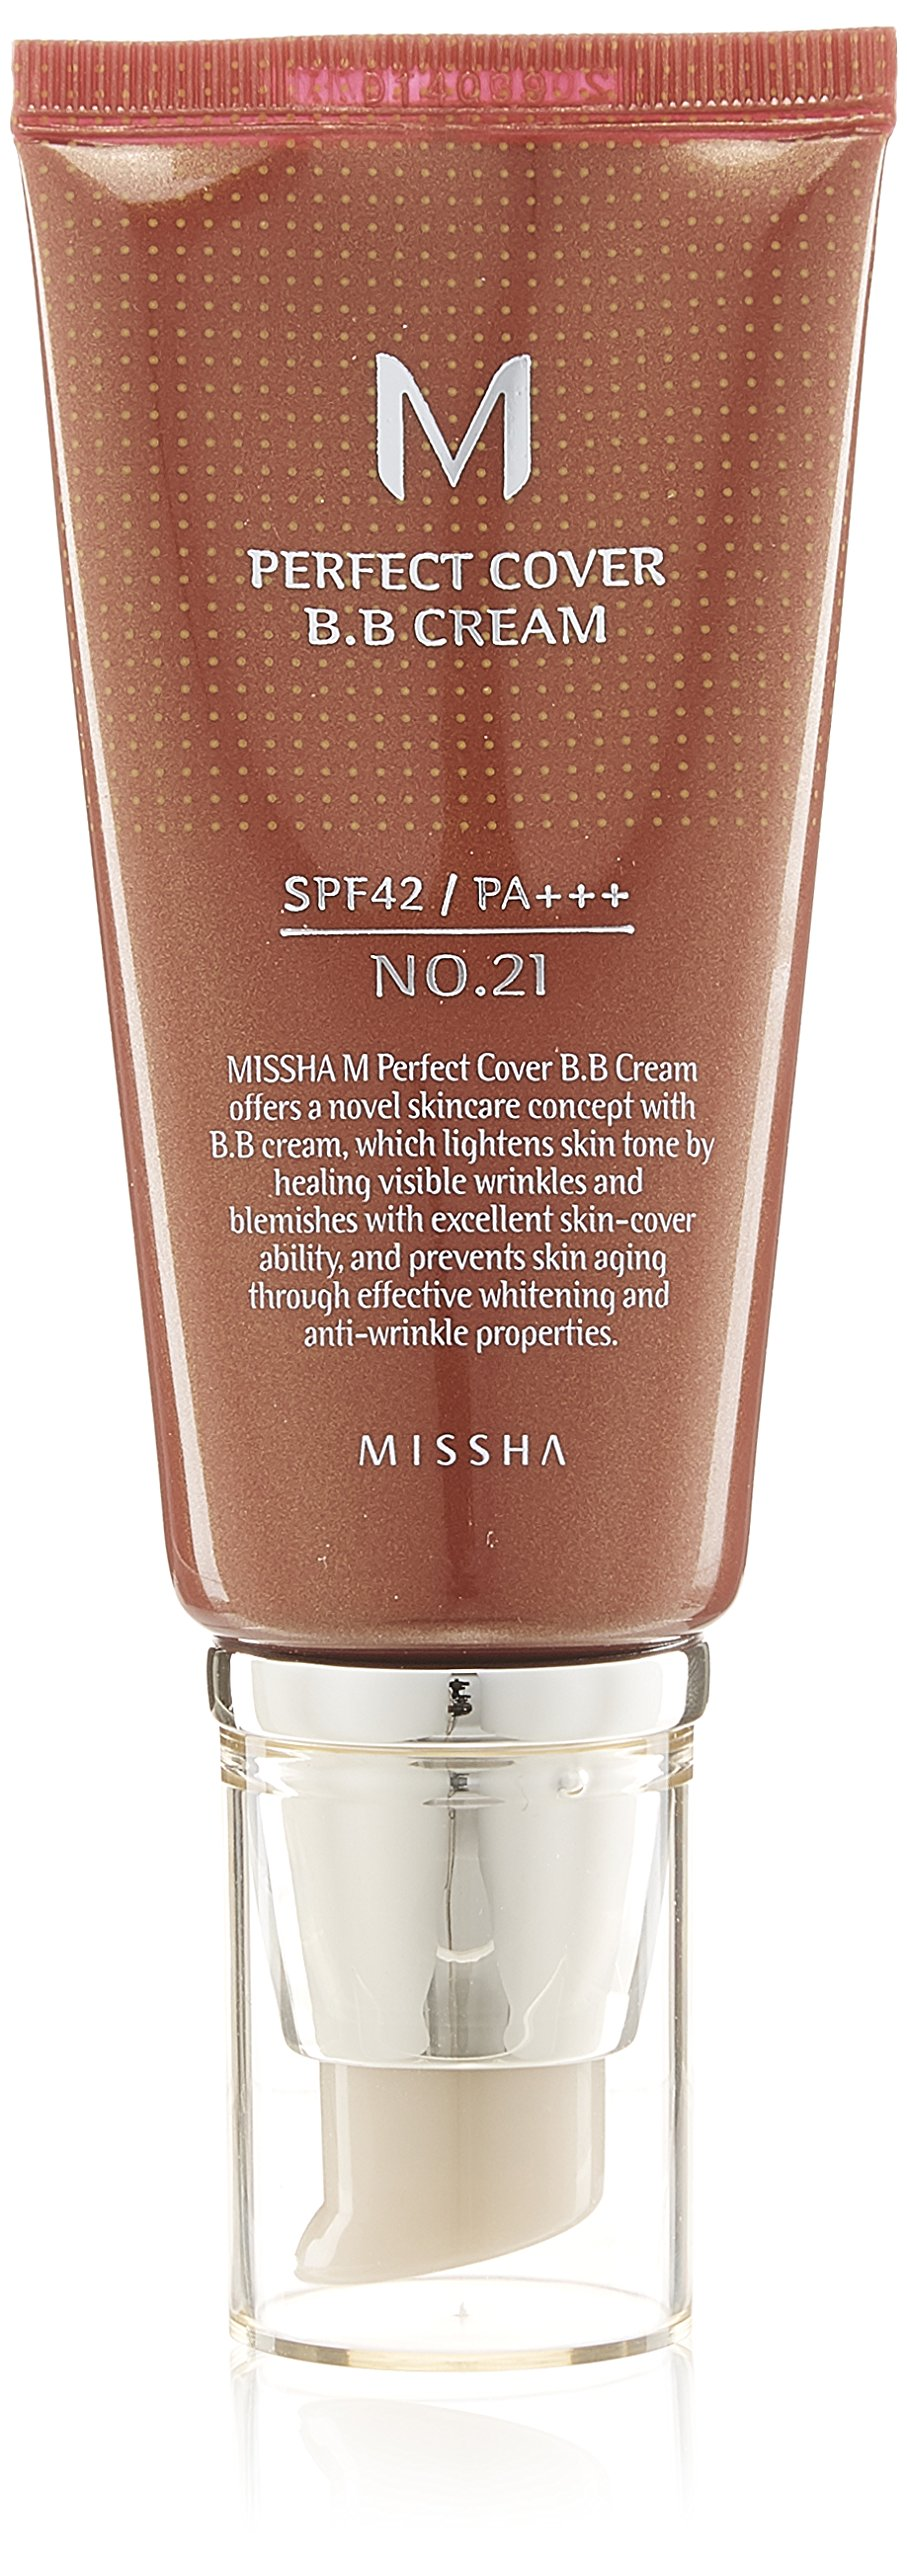 MISSHA M Perfect Cover BB Cream SPF42/PA (No.21/Light Beige) 50ml, 1er Pack product image